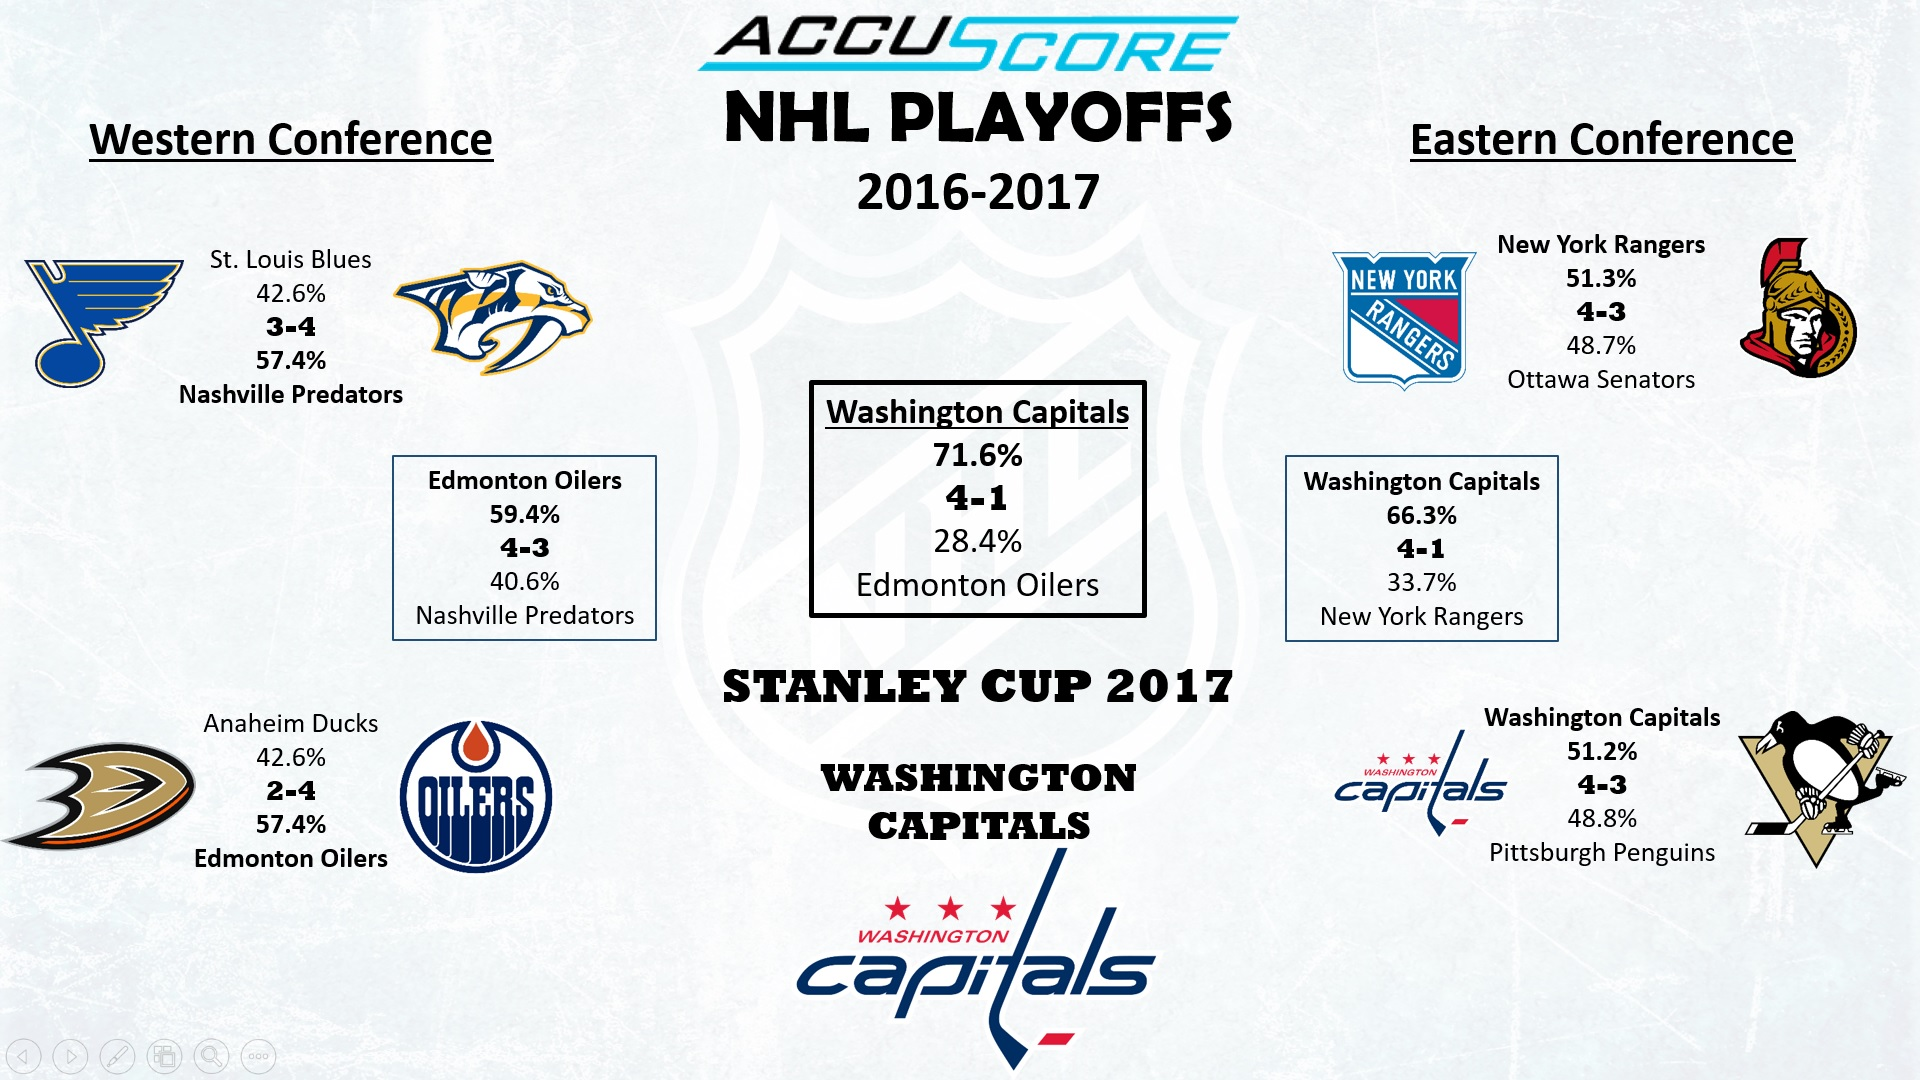 Accuscore's NHL Stanley Cup Playoffs Bracket - Conference Semi-Finals